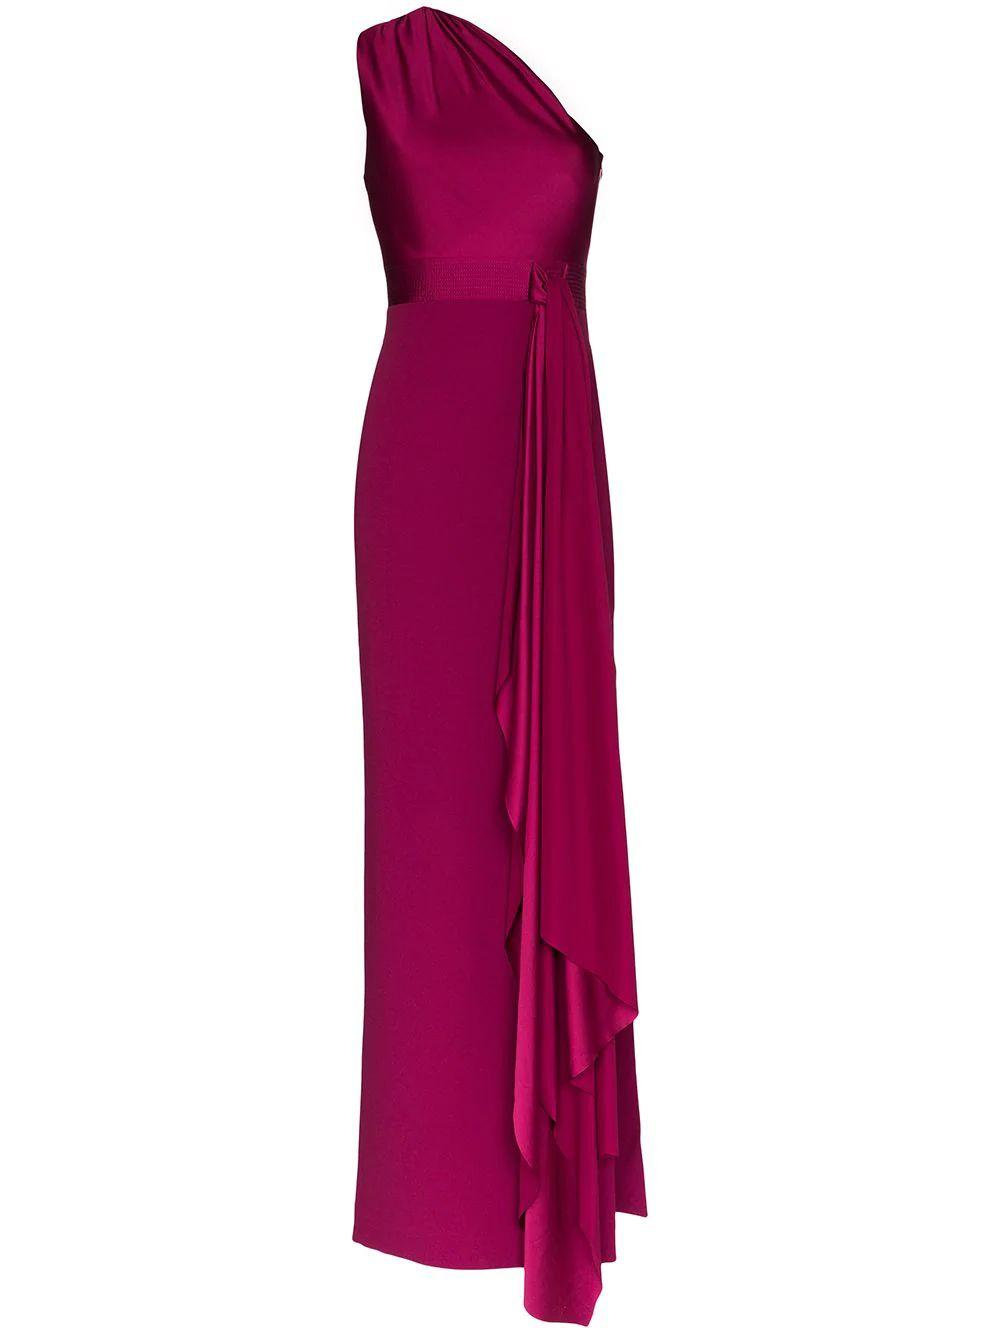 Mara One Shoulder Maxi Dress